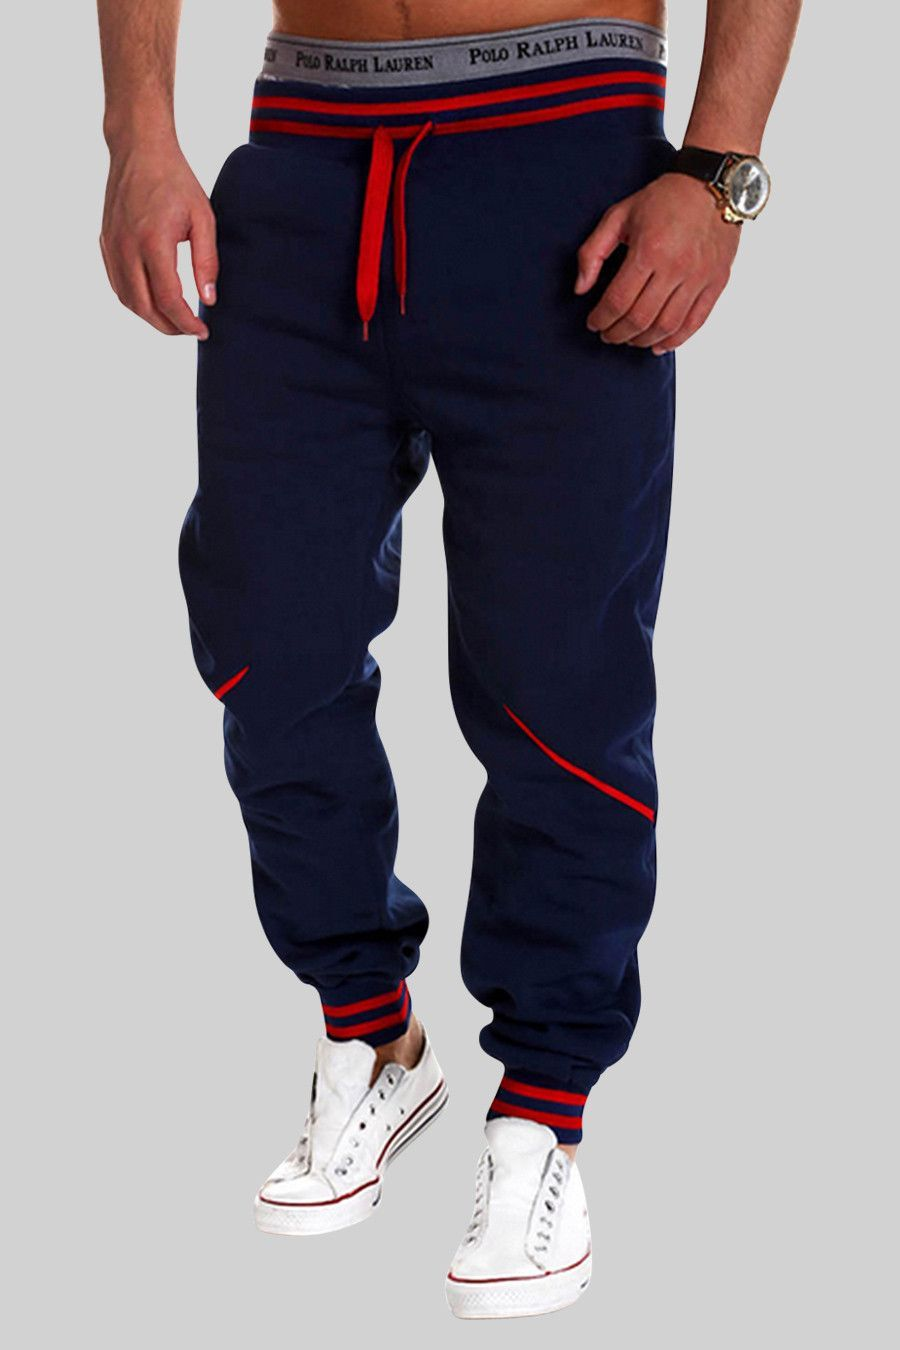 These men s sweatpants combine loose with the comfort of a jogging pant.  while the full front pockets provide added convenience. the material b140ab17b11e